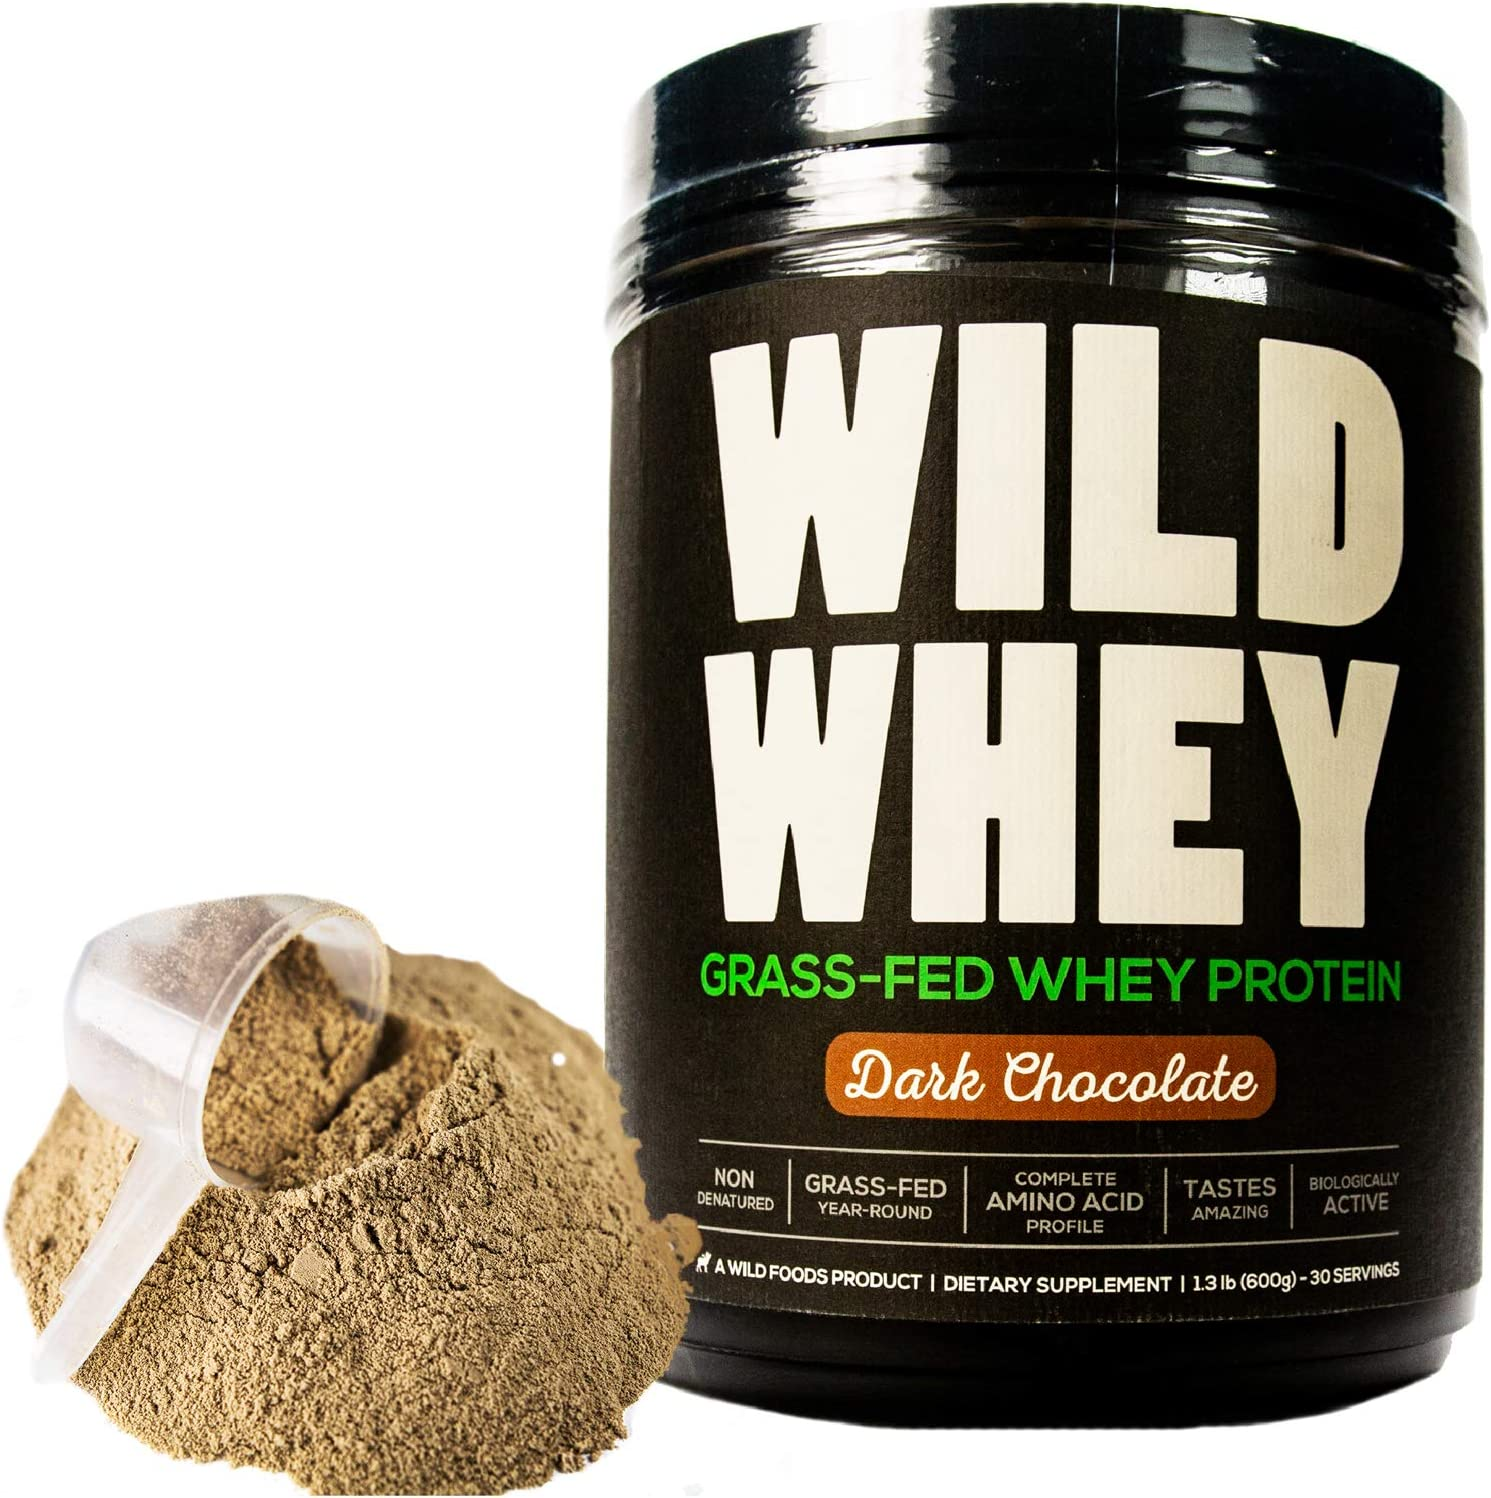 Grass-Fed Whey Protein, Cold Process, Low Carb, Keto Friendly, Non-Denatured, GMO-Free Protein Concentrate Made Directly from Grass-Fed Milk 600g – 1.32 Pound, Dark Chocolate